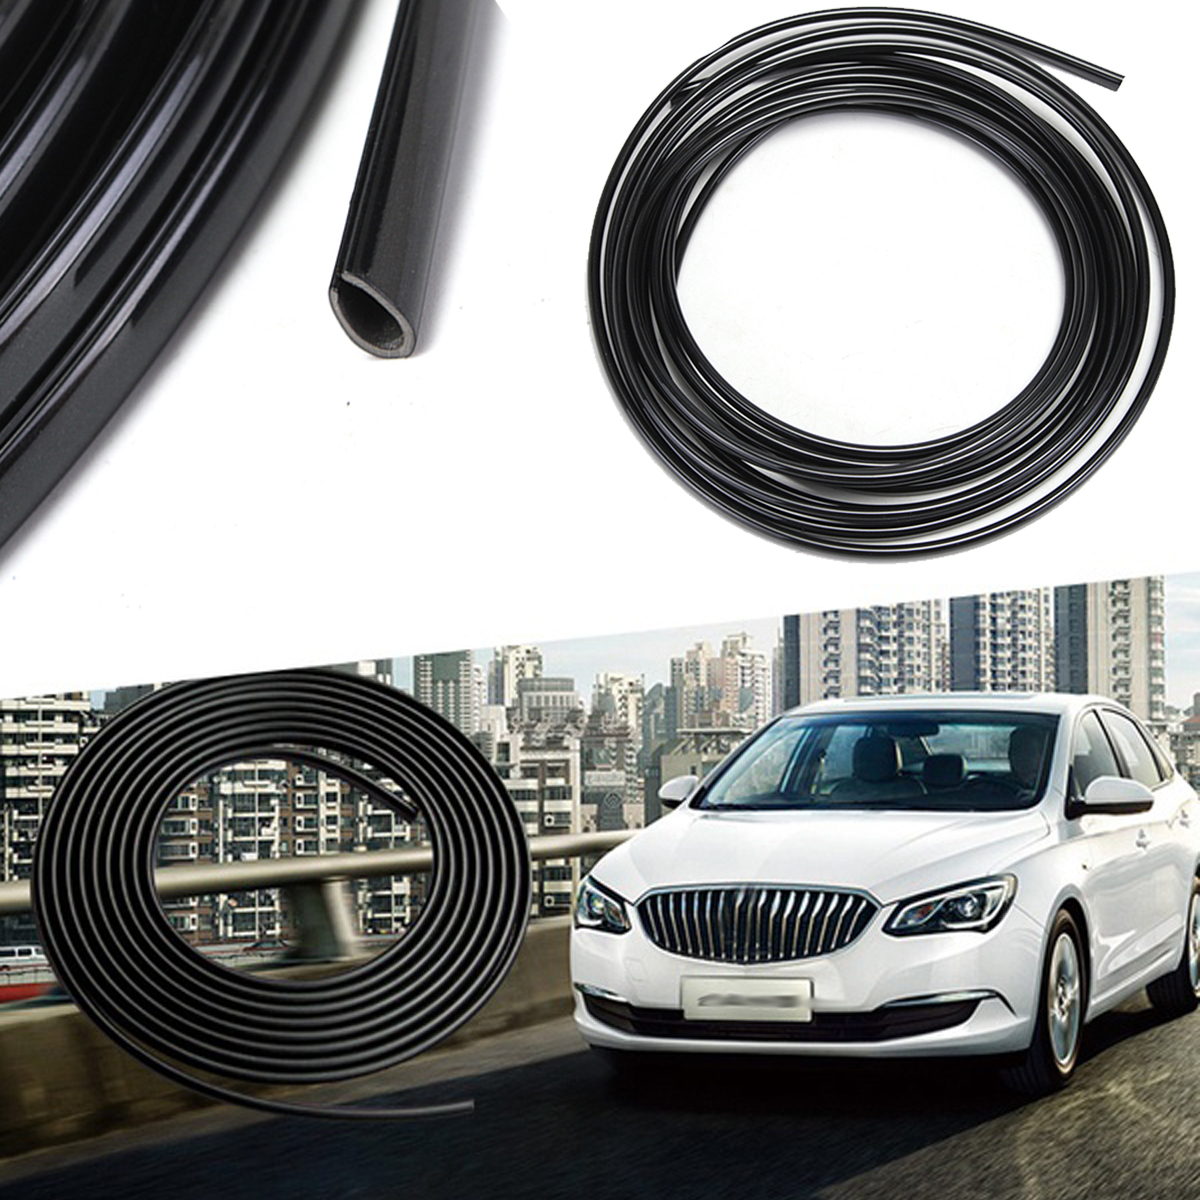 5m Rubber Car Interior Moulding Trim Strip Black Flexible Decora